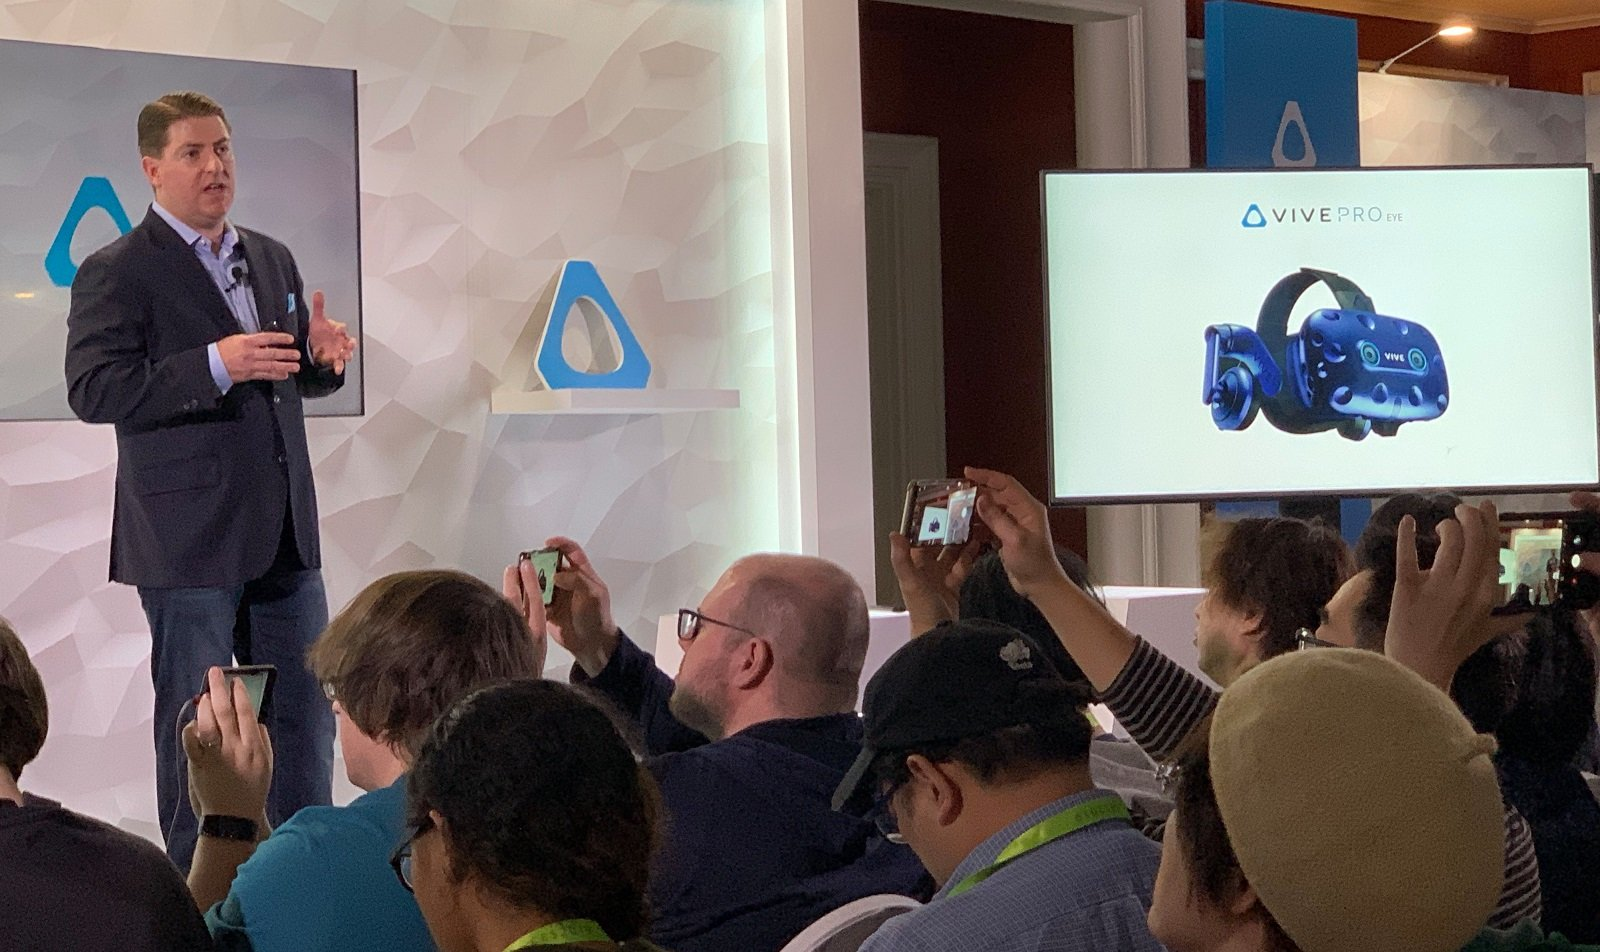 HTC reveals Vive Pro Eye at CES 2019